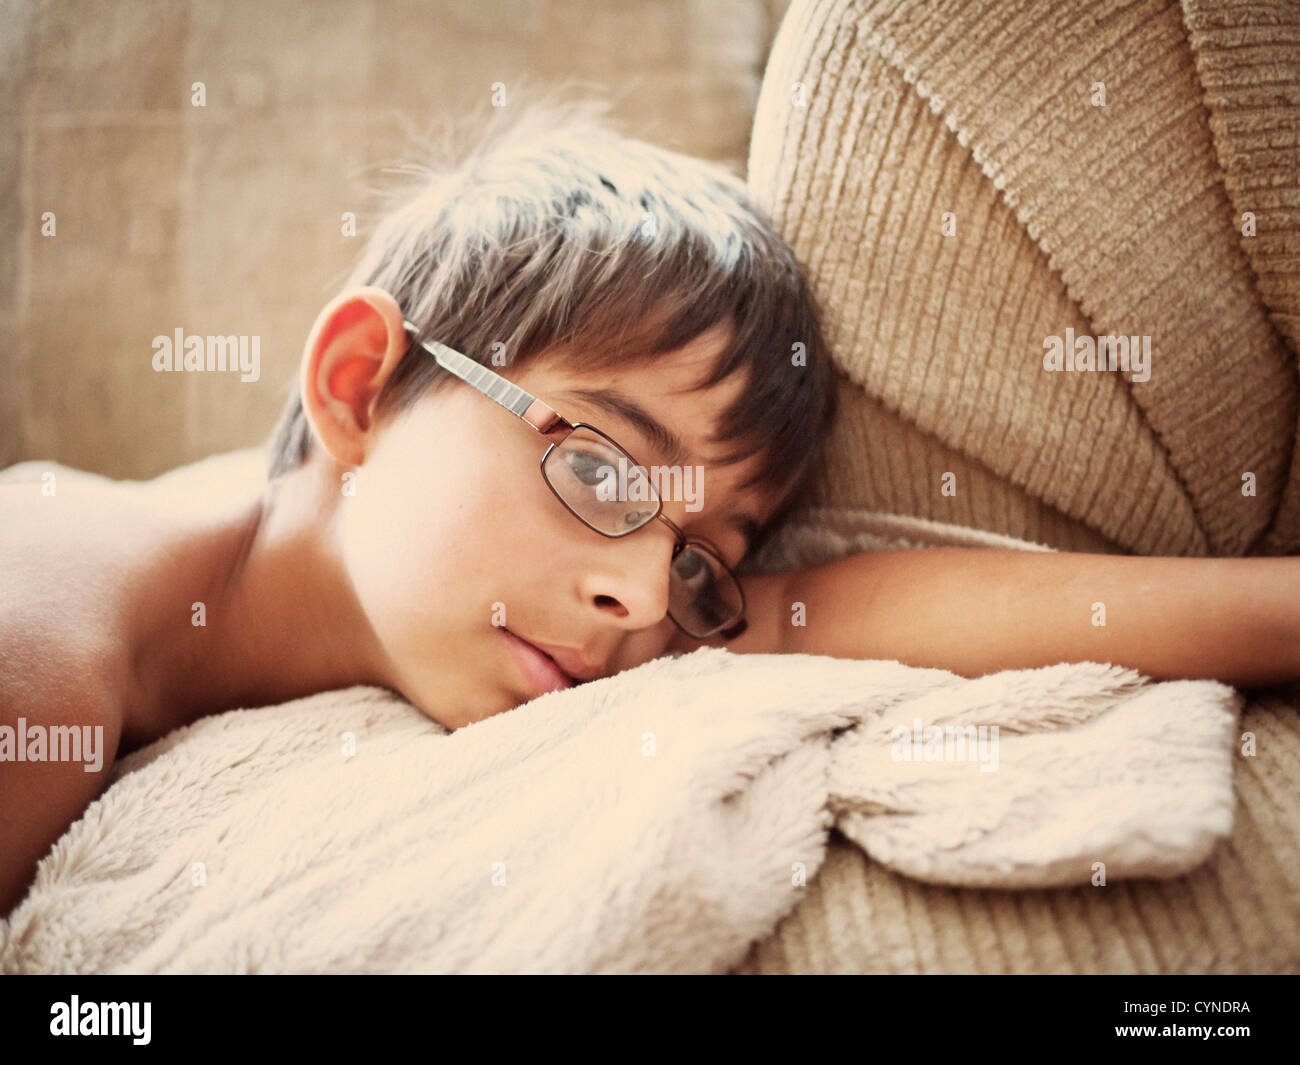 Boy lies on sofa early morning. - Stock Image